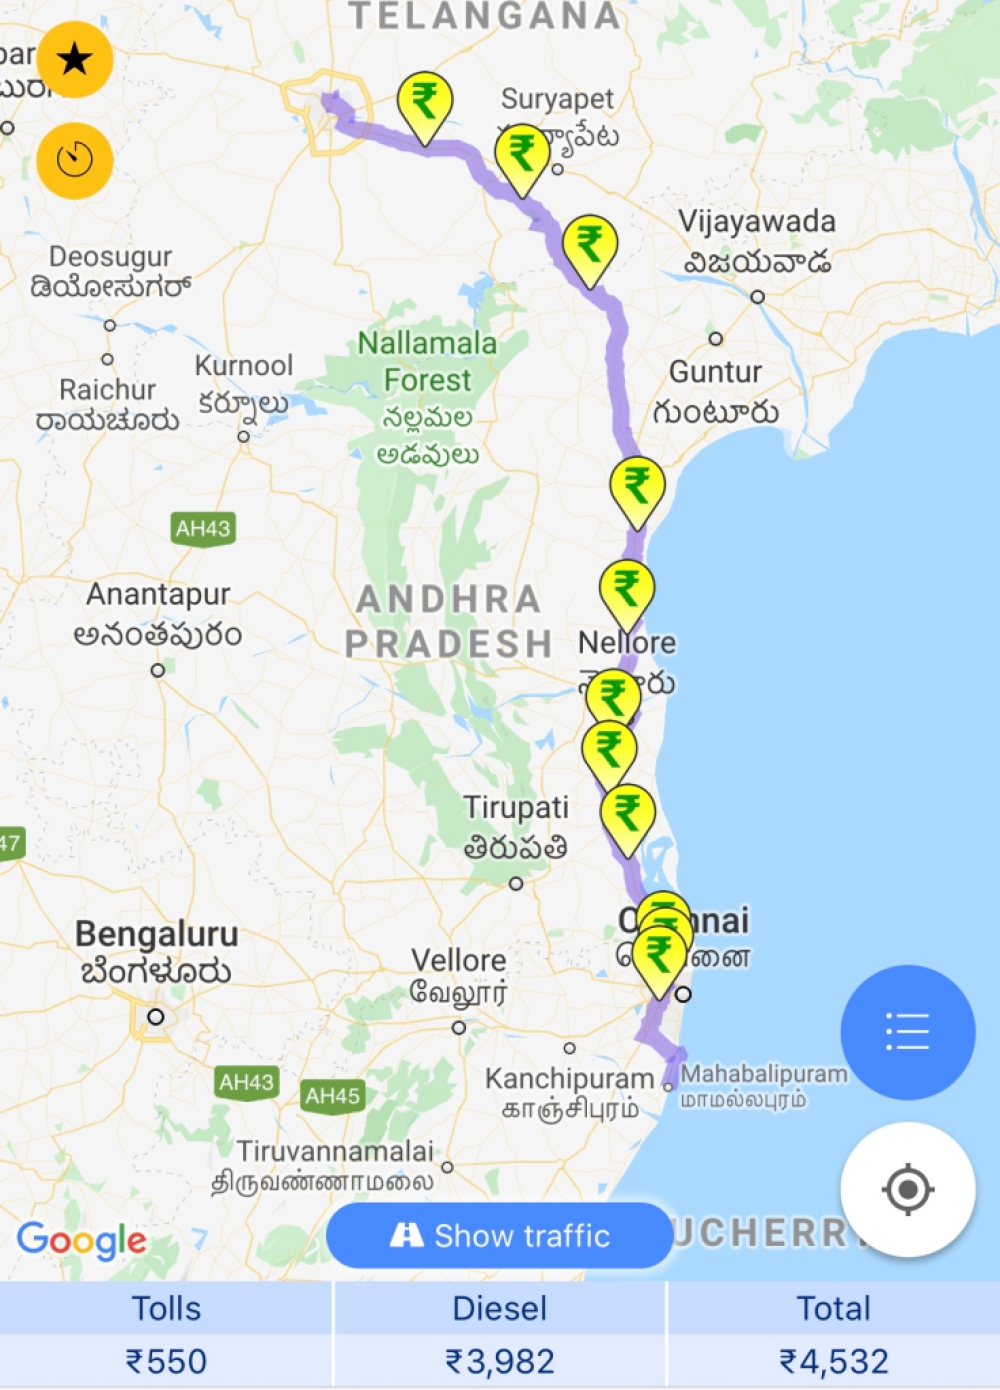 Hyderabad to Mahabalipuram Fuel and Toll details